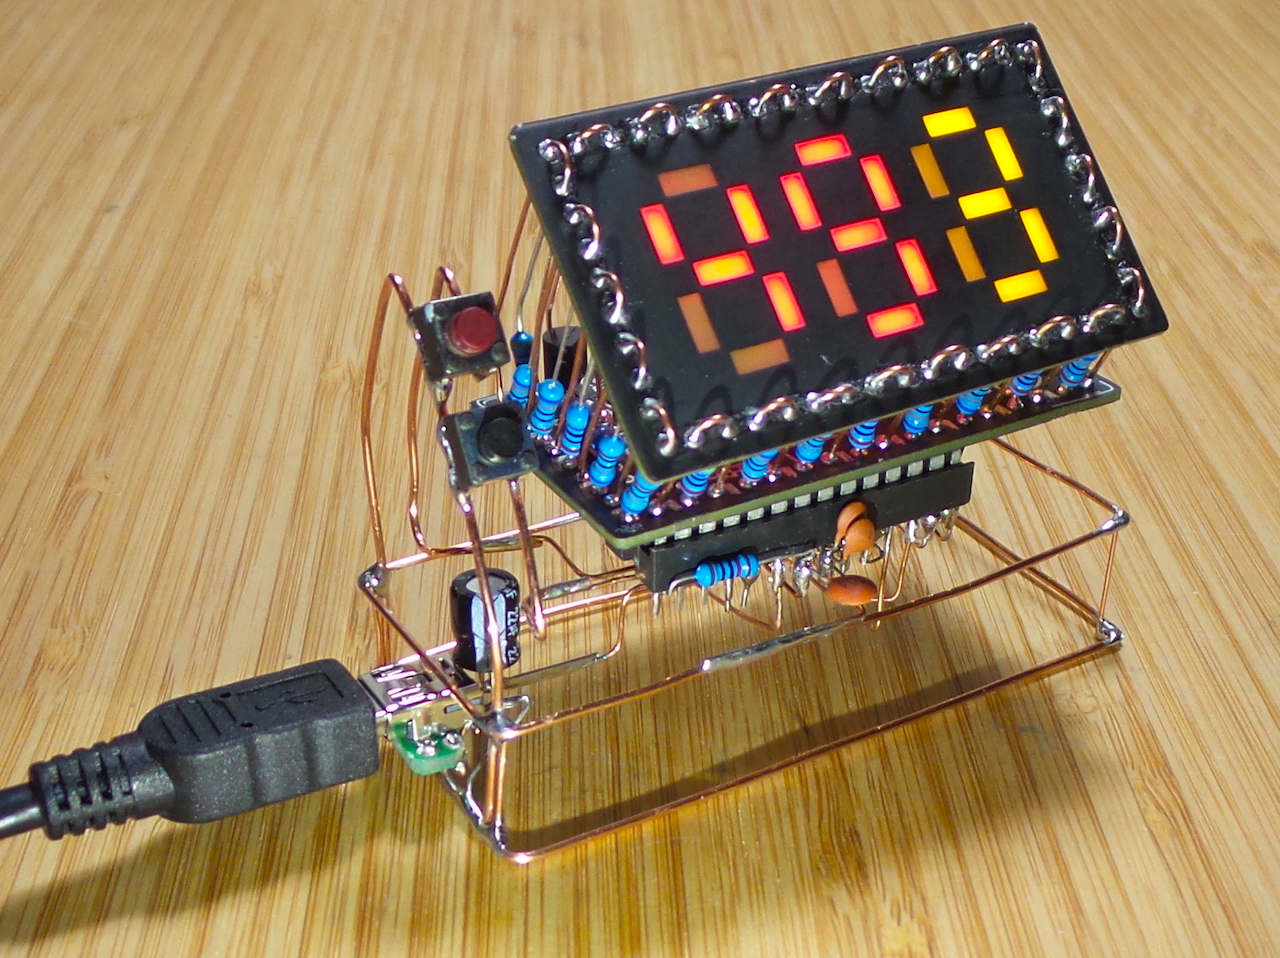 My new Pomodoro Timer - a #BoldportClub 3x7 wire sculpture inspired by the amazing work of @MohitBhoite LEAP#429